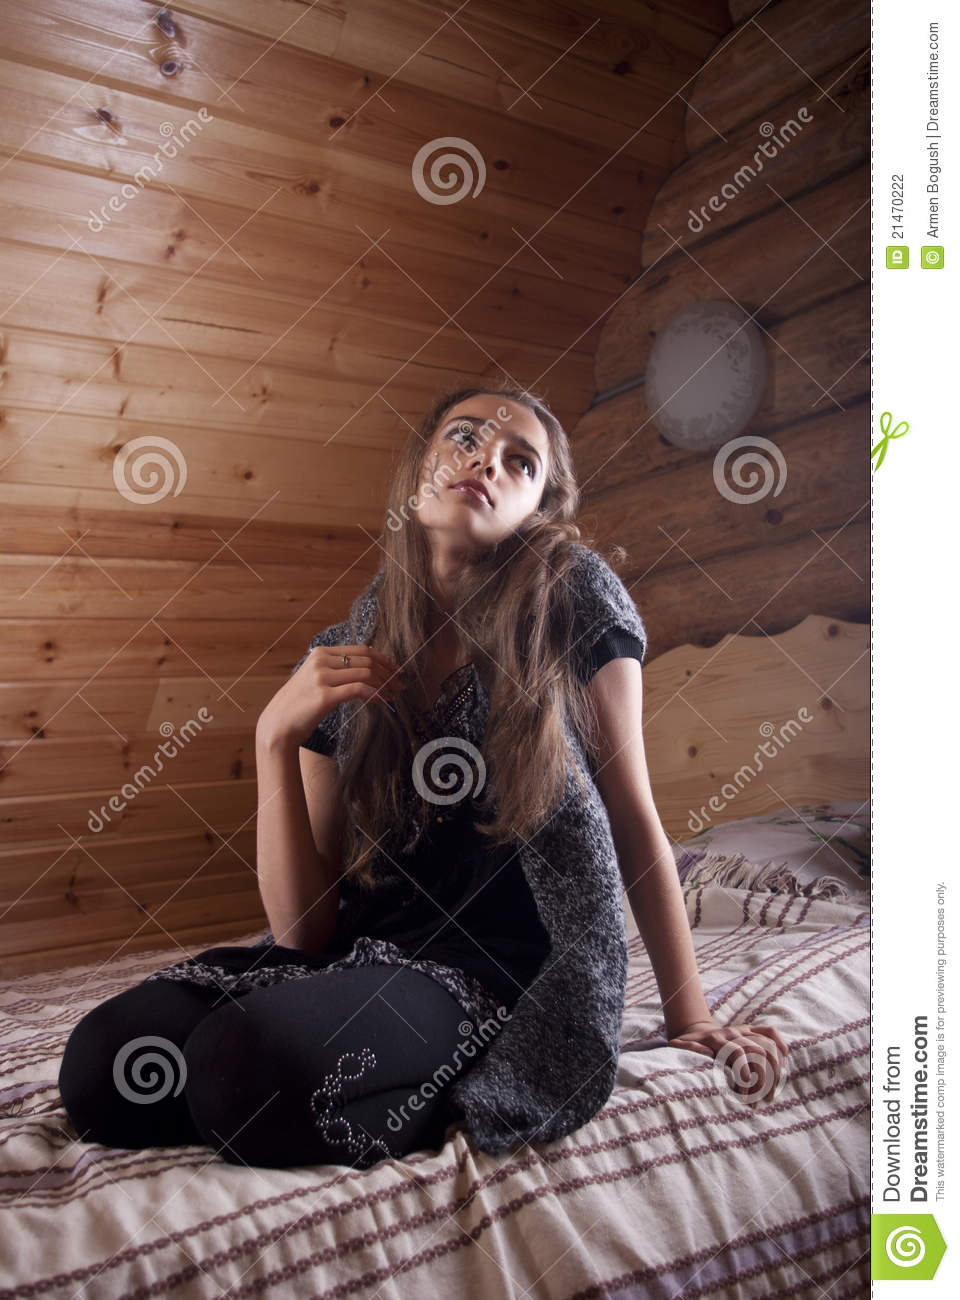 Girl In Black Jersey Sitting On Bed Stock Photo - Image